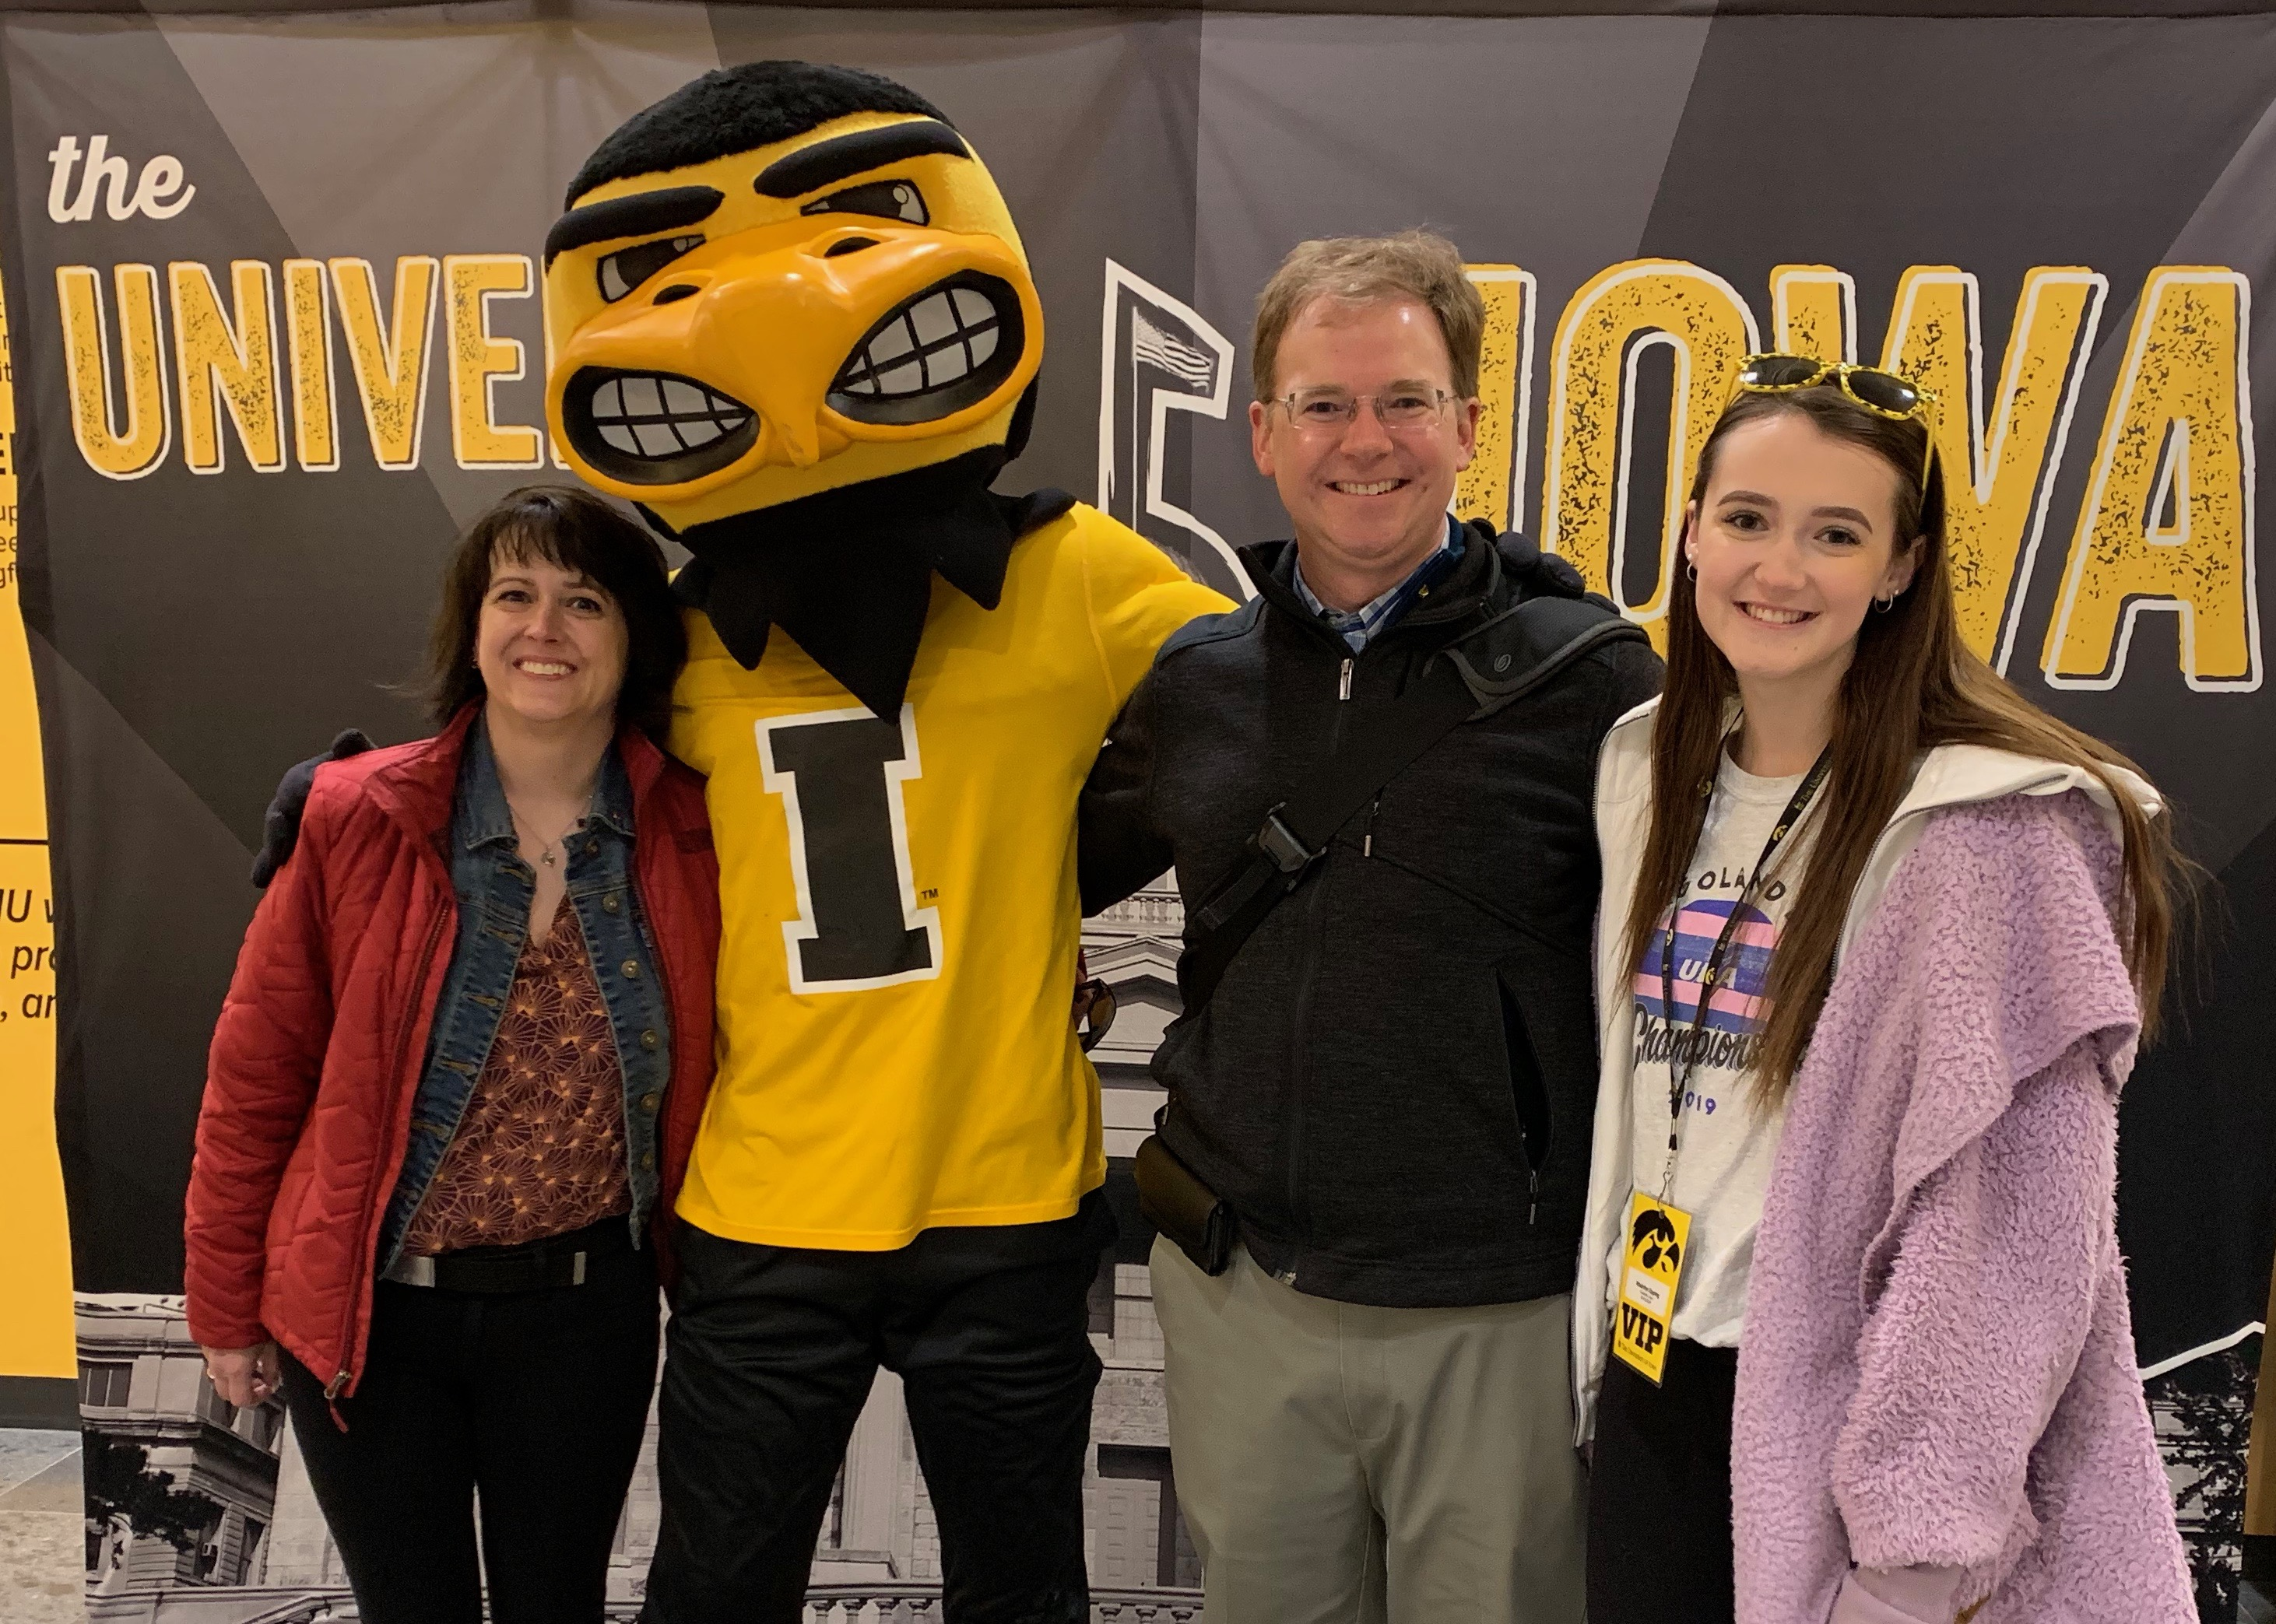 A family stands with their arms around a university athletics mascot